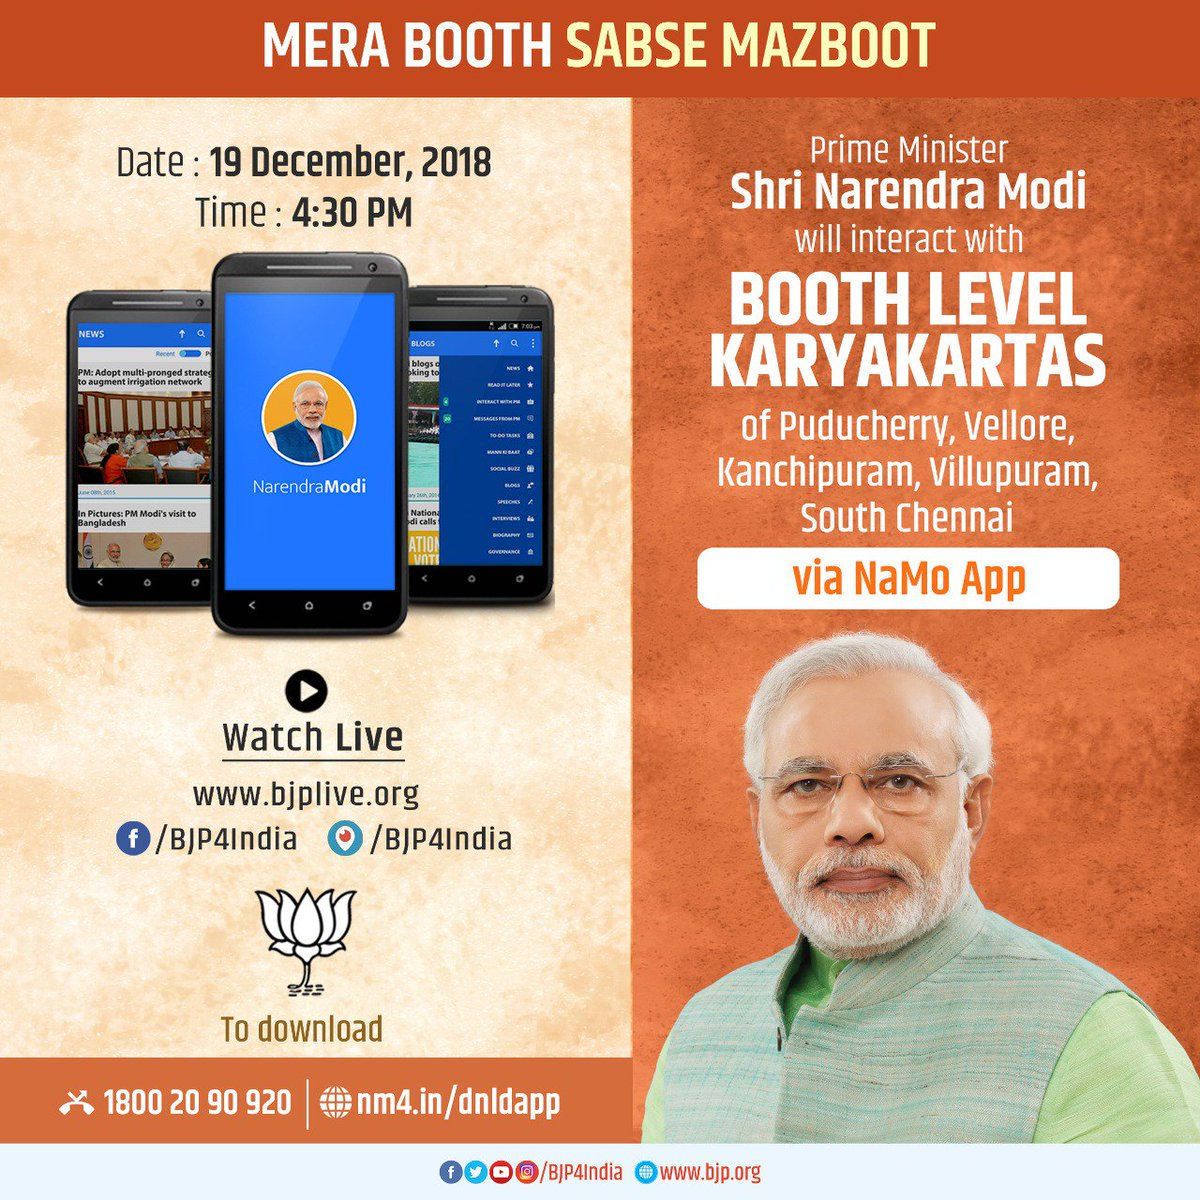 Prime Minister Shri @narendramodi will interact with booth karyakartas of @BJP4TamilNadu &  at @BJP4Puducherry4.30 pm today. Watch LIVE at 'Narendra Modi app' and 's s@BJP4Indiaocial media channels.